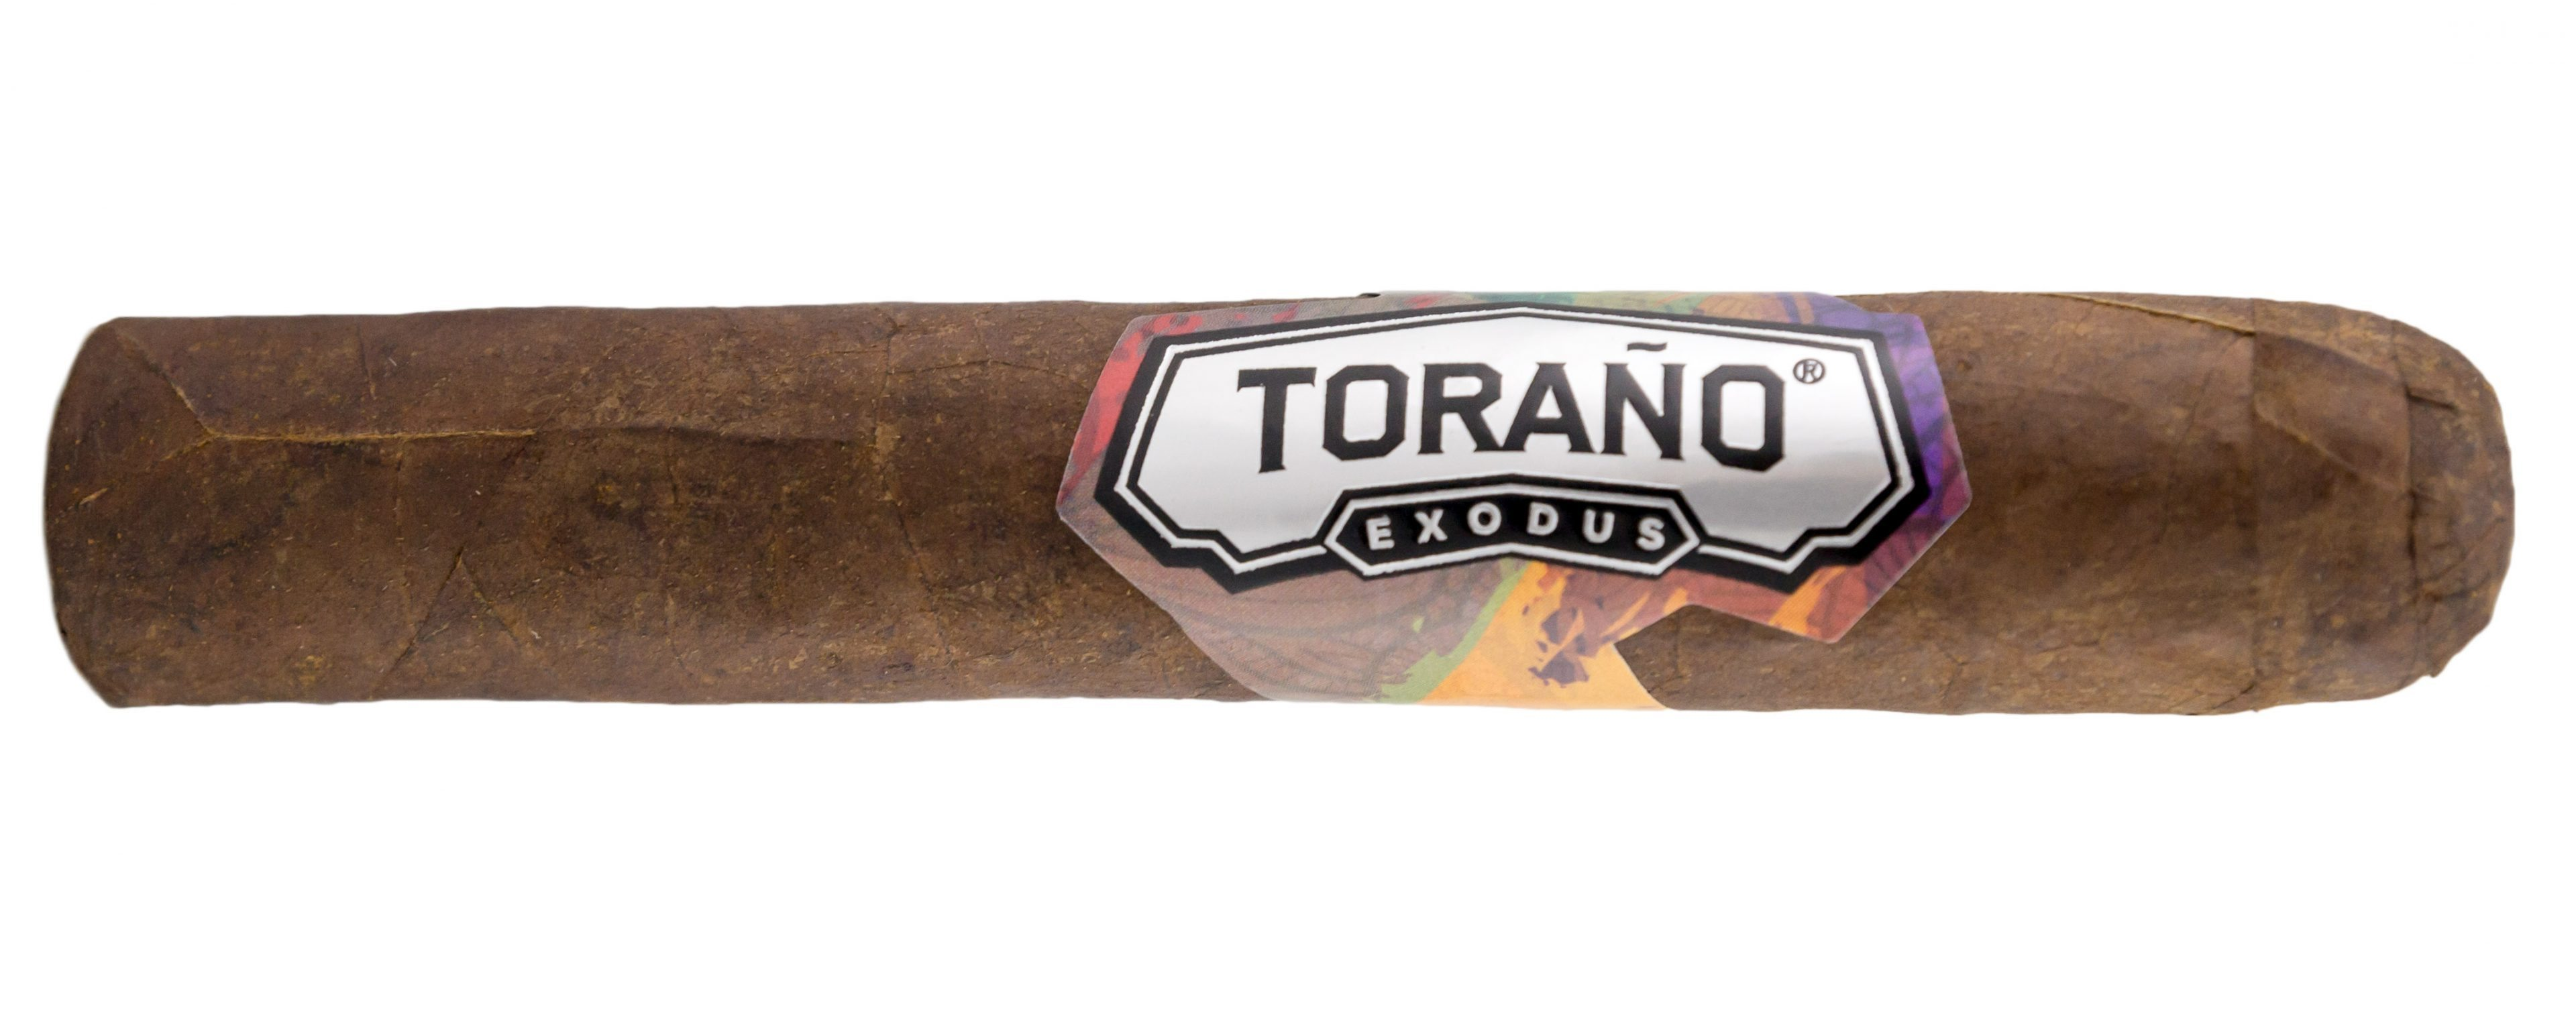 Blind Cigar Review: Toraño | Exodus Robusto (2016)